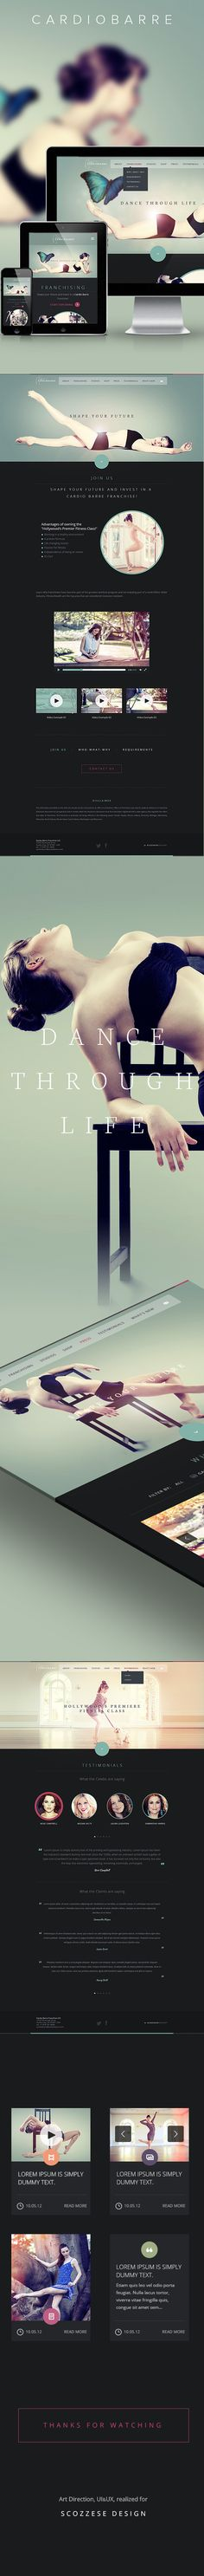 Cardiobarre / Website by Andrea Censi, via Behance